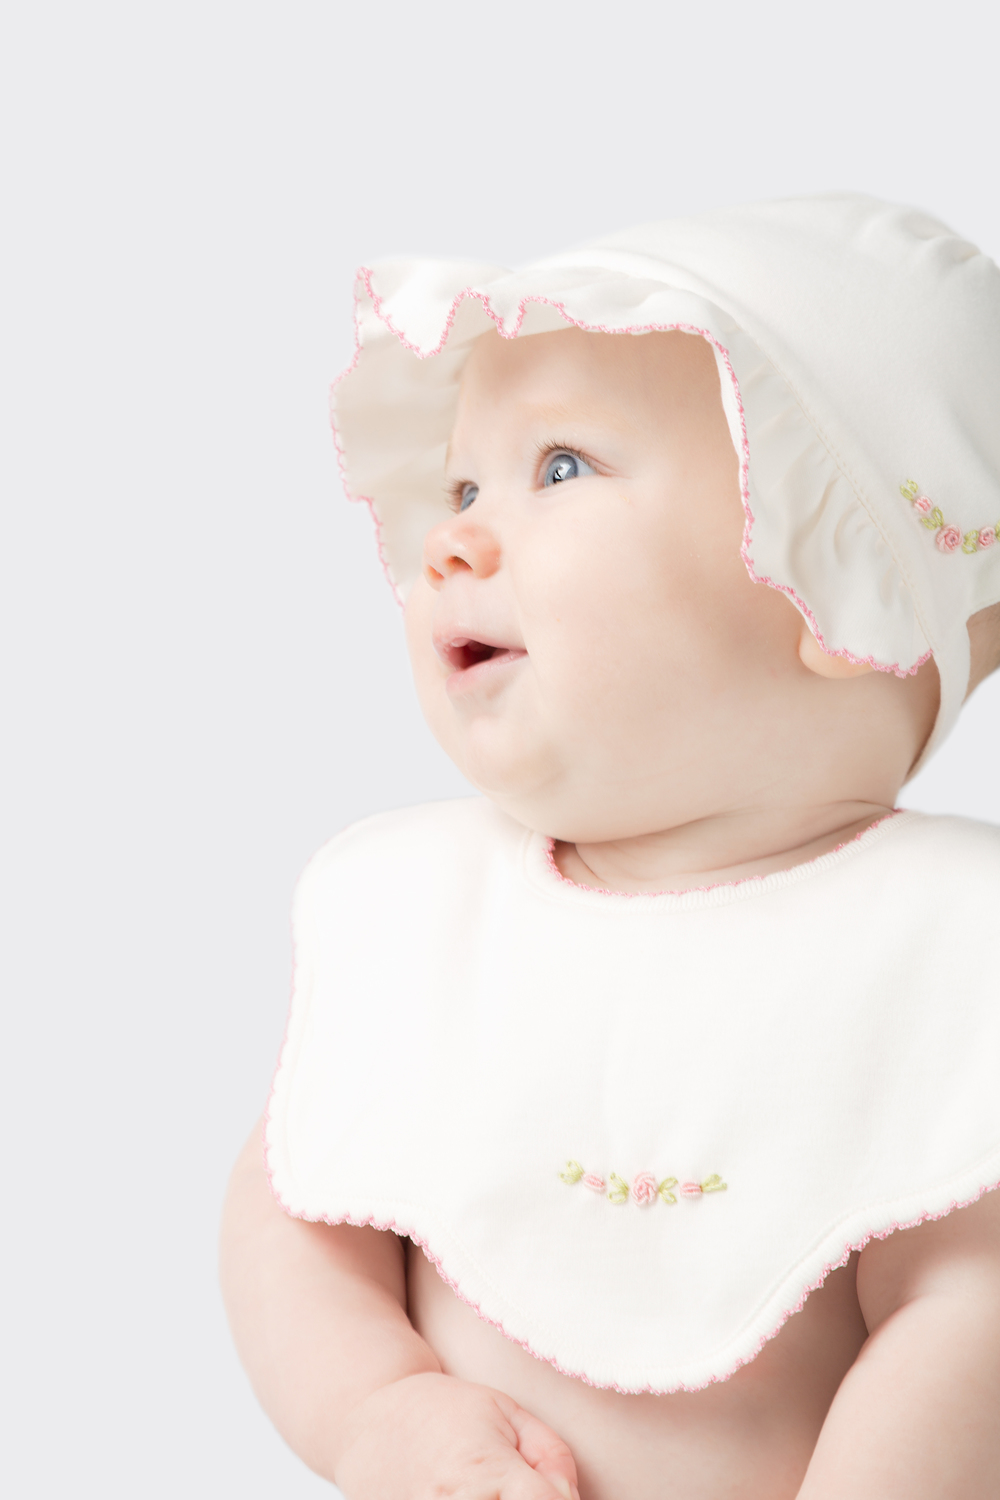 Dress your little princess with elegance, grace and style in our hand-made clothing.